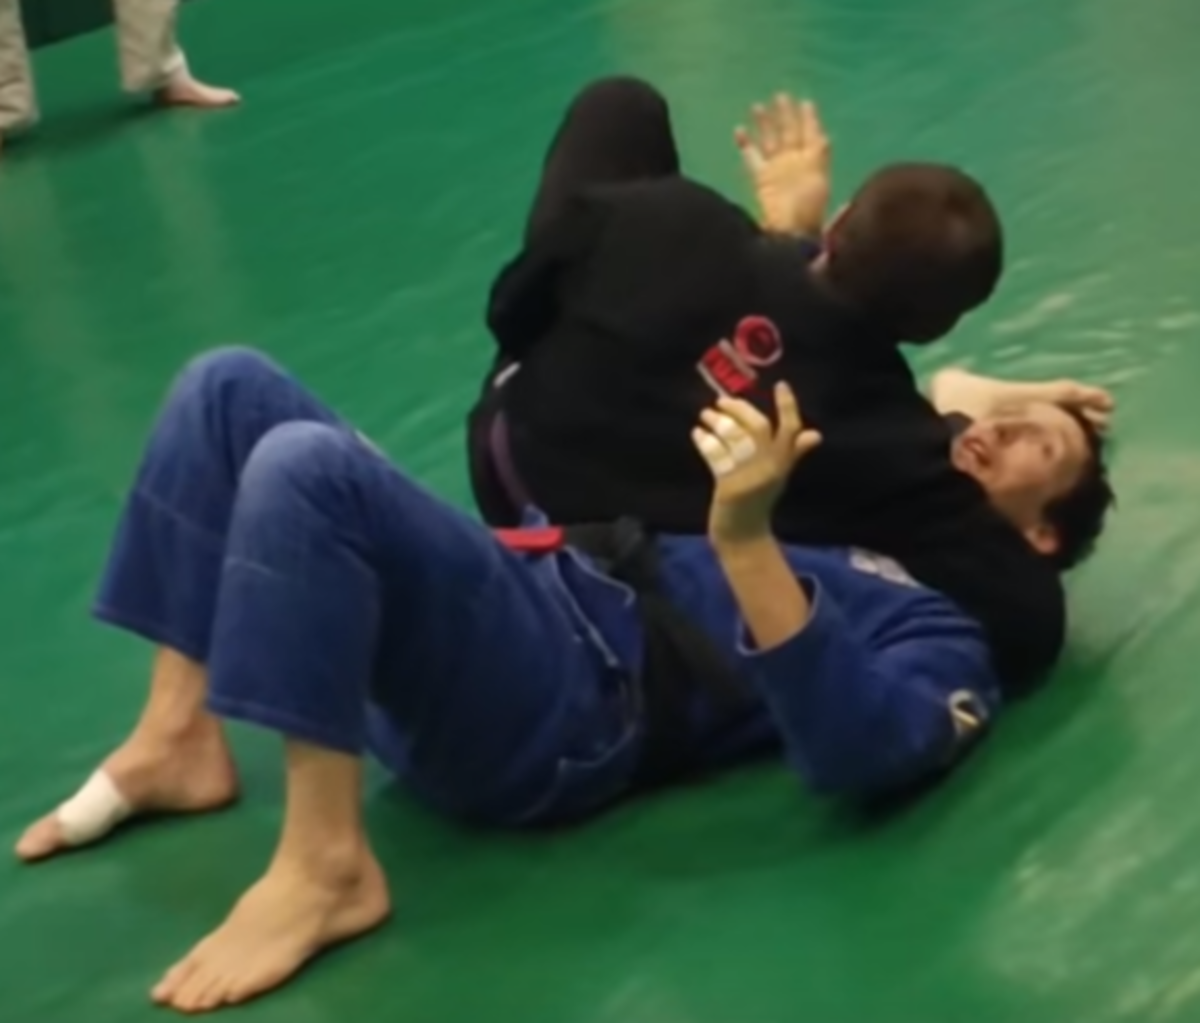 Attempting to escape a headlock.